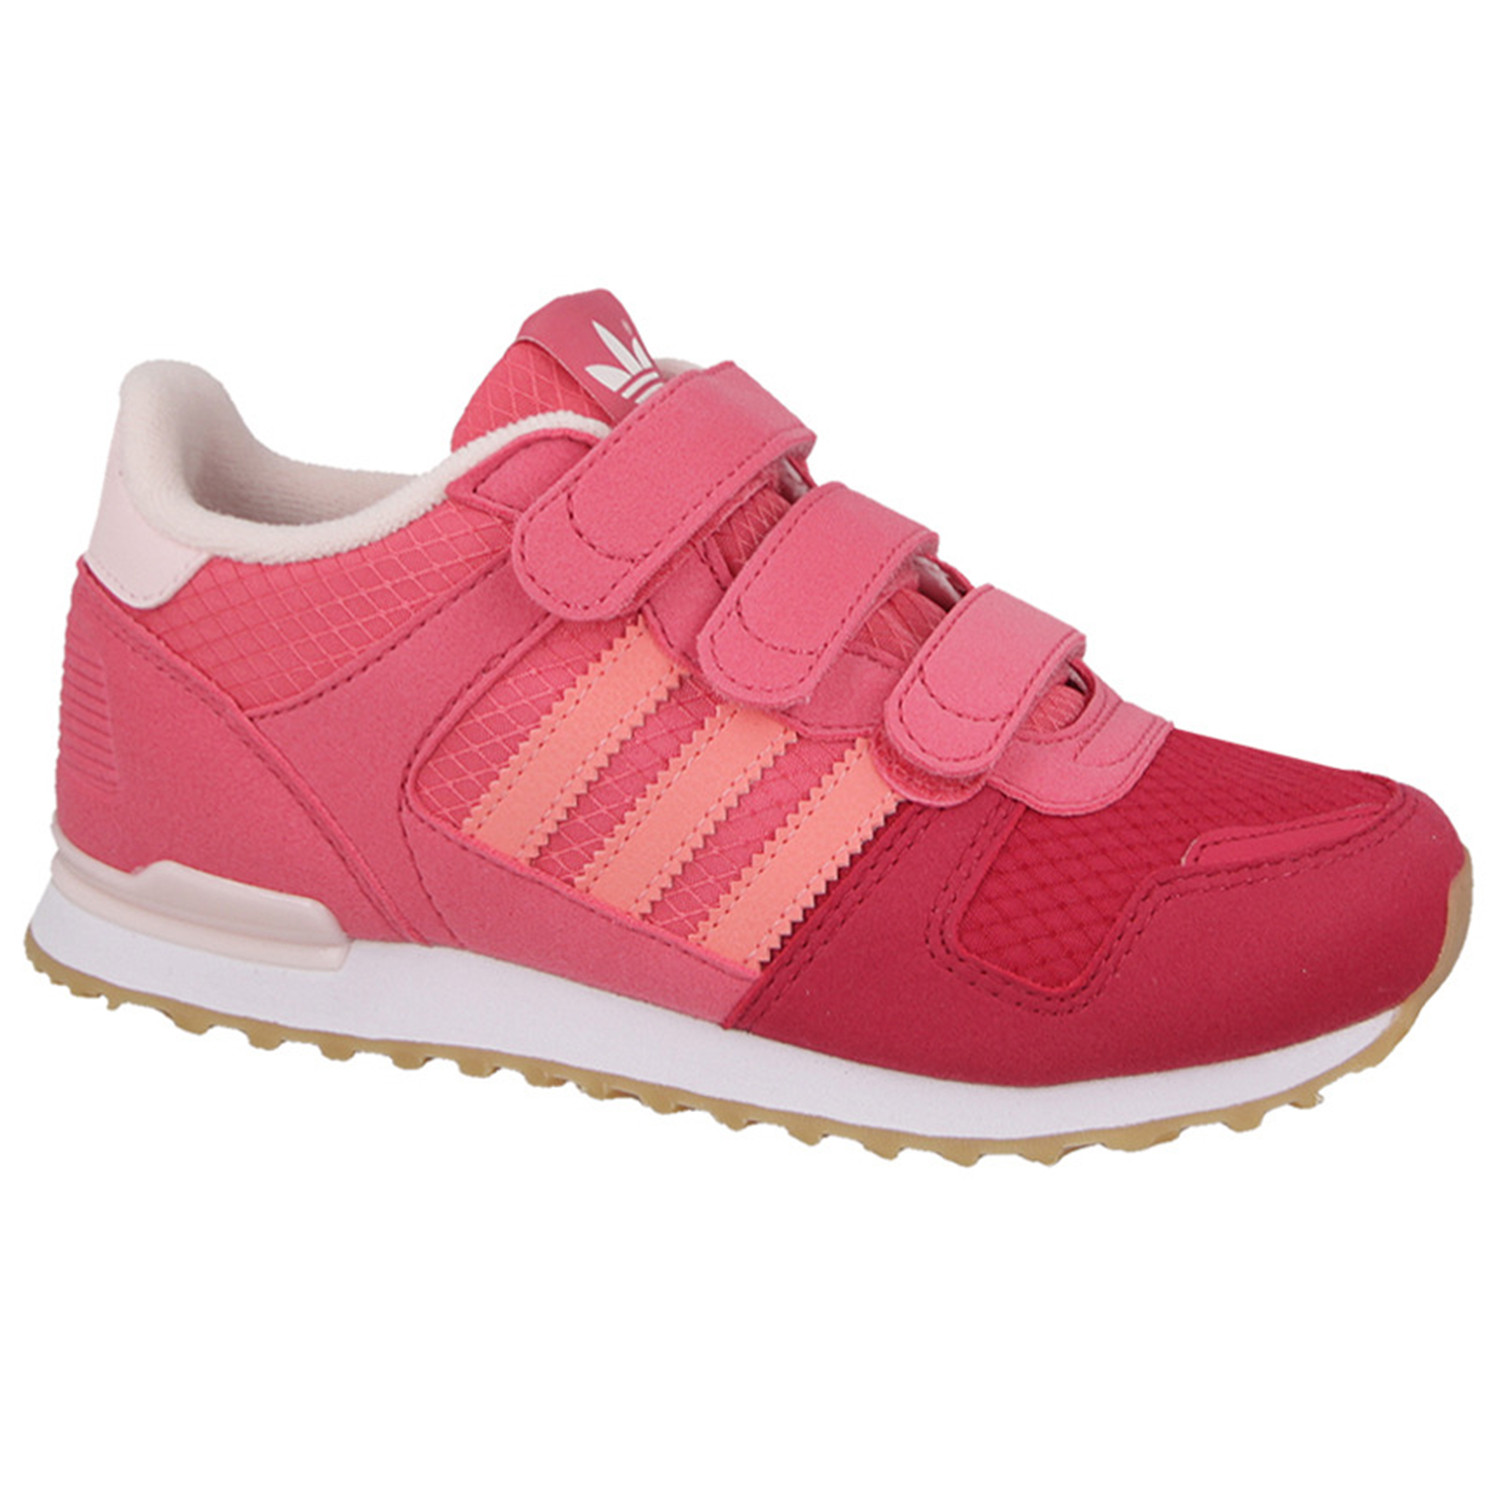 Chaussures De Marque Zx 700 Cf Chaussure Fille Adidas Rose Pas Cher Baskets Basses Rtxxpaqa-144525-7455475 Customers First